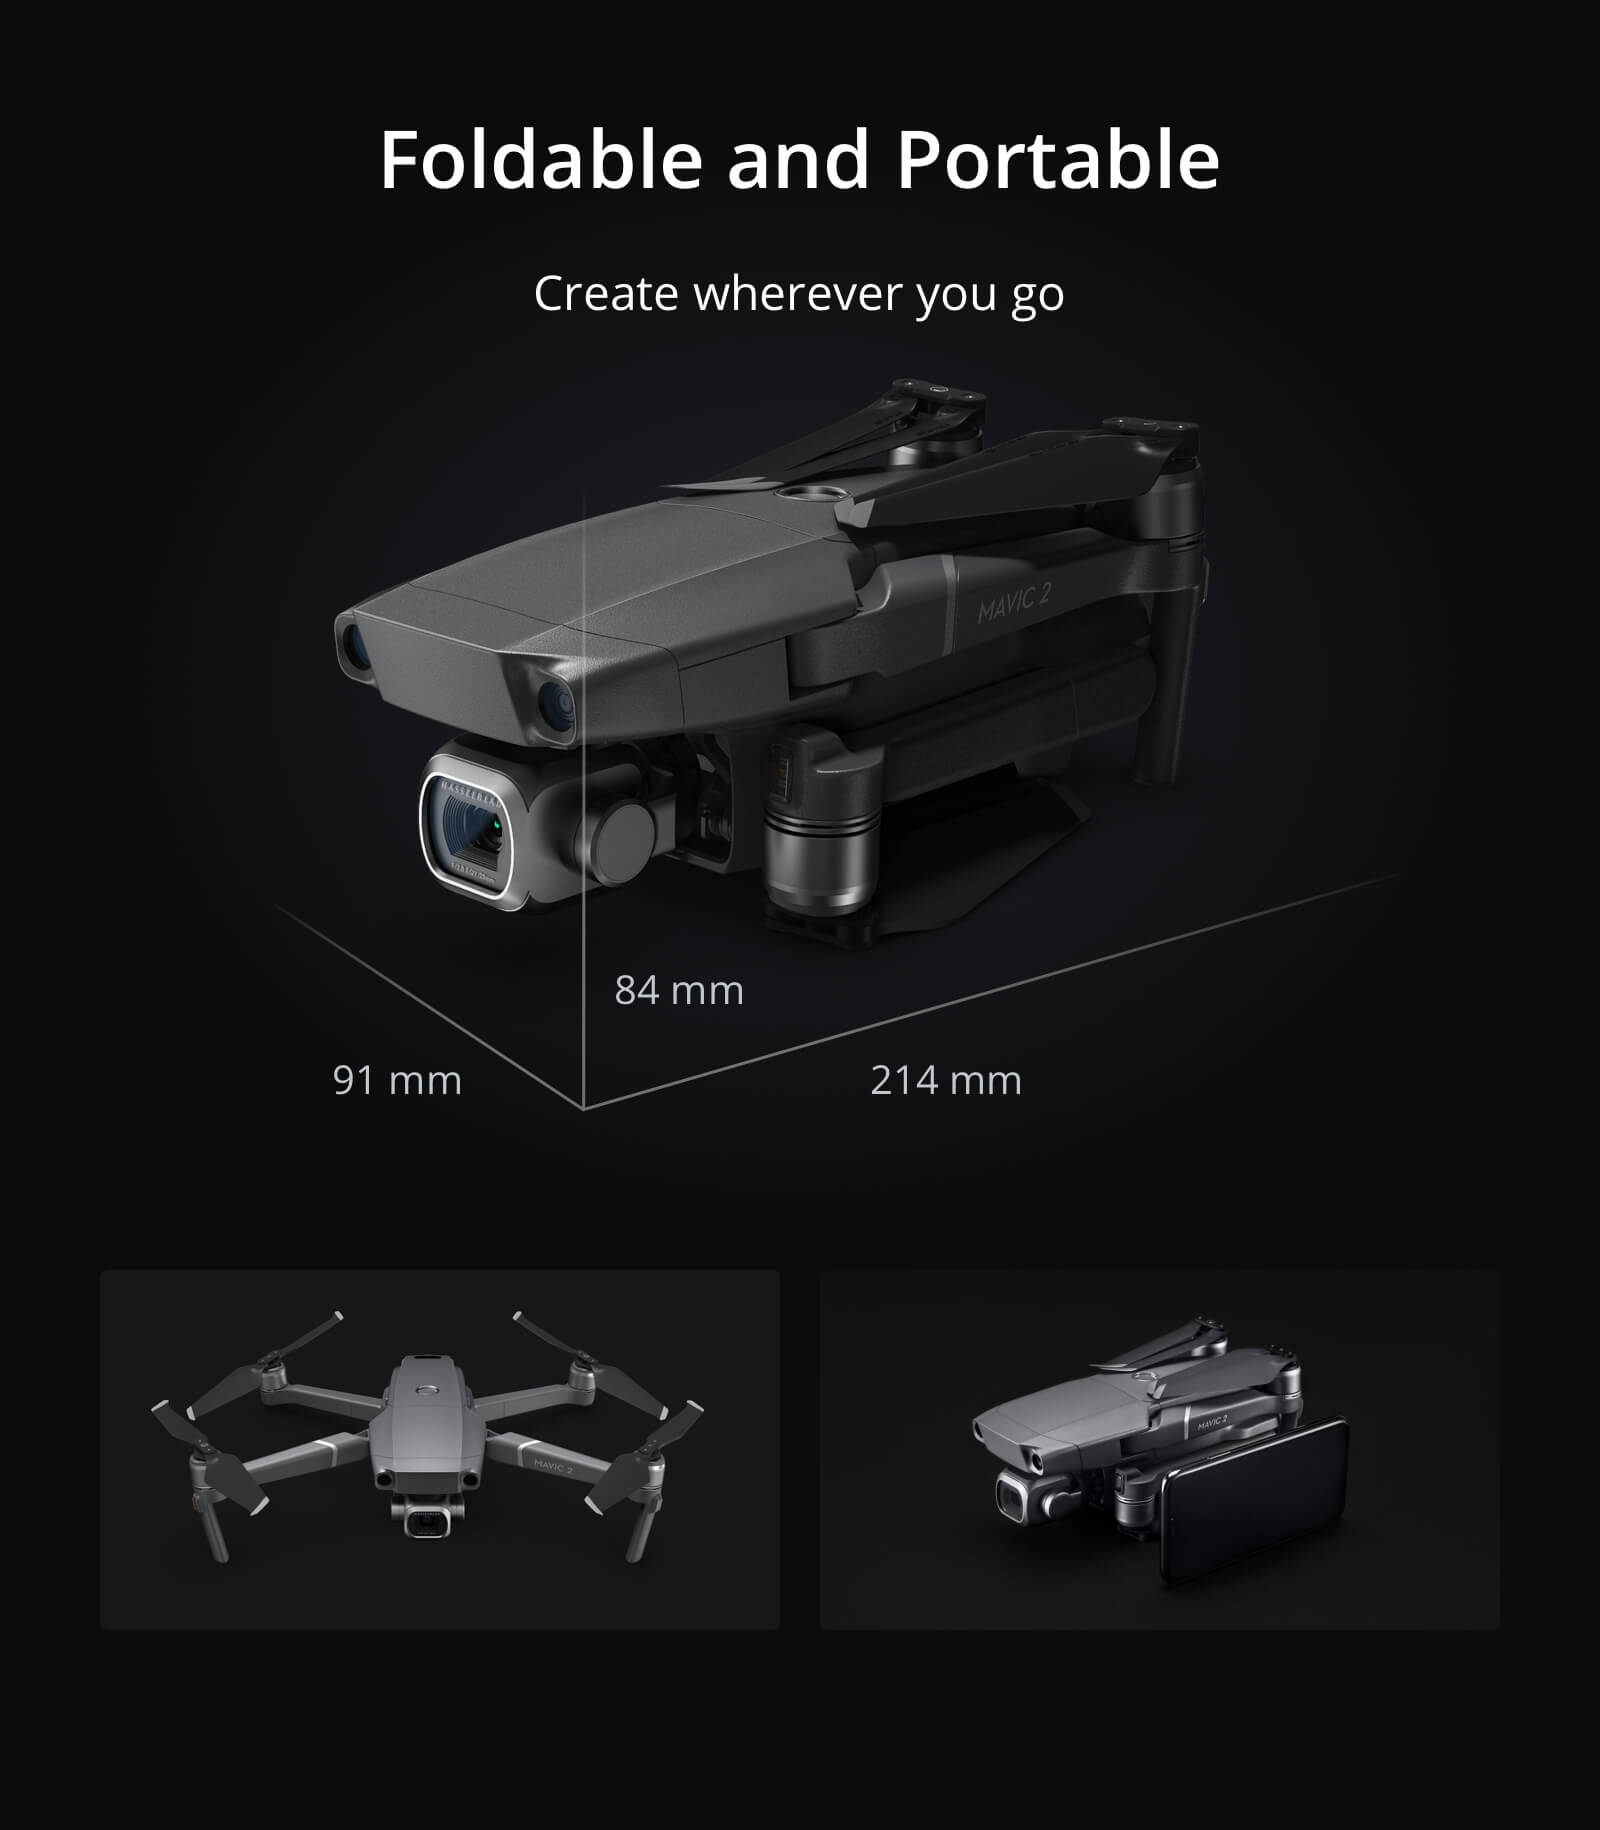 radio controlled drone with camera with 11163 Dji Mavic 2 Pro 4k Hasselblad 1 Cmos Sensor Dji Mavric Camera Drone Dublin Ireland on slopecare further Hangar 9 Taylorcraft as well 850238006158 Odyssey Pocket R C Drone Nx With Hd Video Camera Indoors Outdoors Auto Hover 152593835 besides Stock Photo Flying Silhouette Drone Against Sunset Beautiful Sky Image68046219 additionally 11163 Dji Mavic 2 Pro 4k Hasselblad 1 Cmos Sensor Dji Mavric Camera Drone Dublin Ireland.